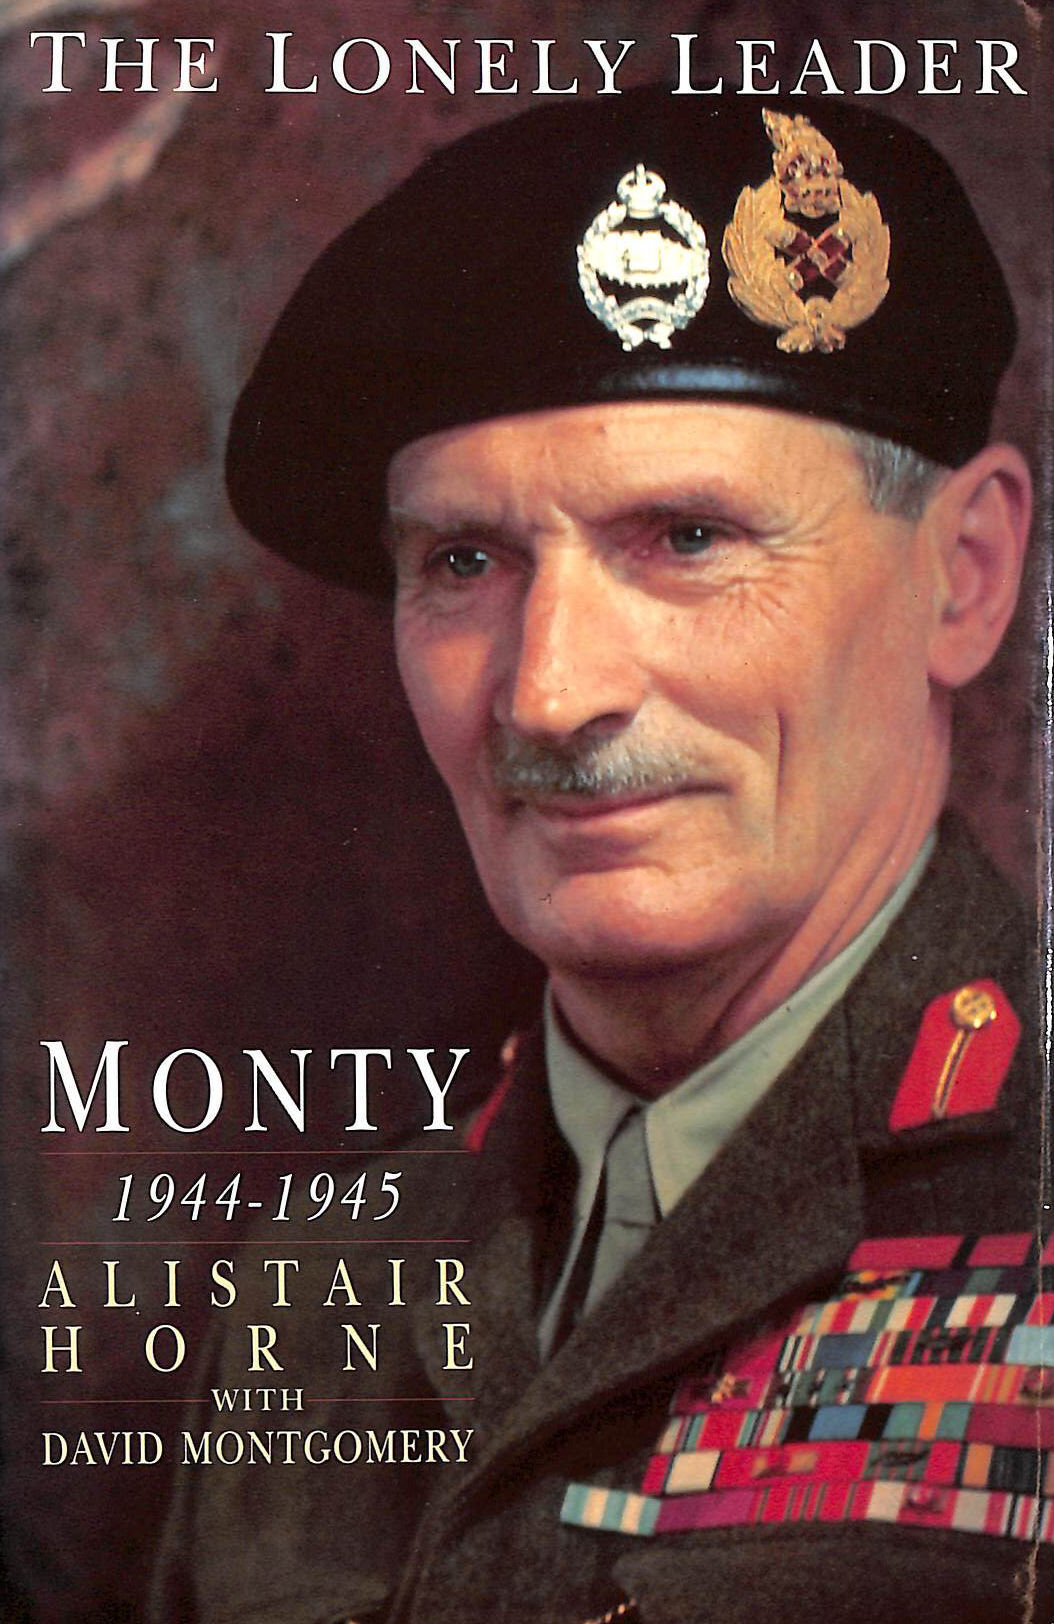 Image for The lonely leader : Monty, 1944-1945 / Alistair Horne with David Montgomery